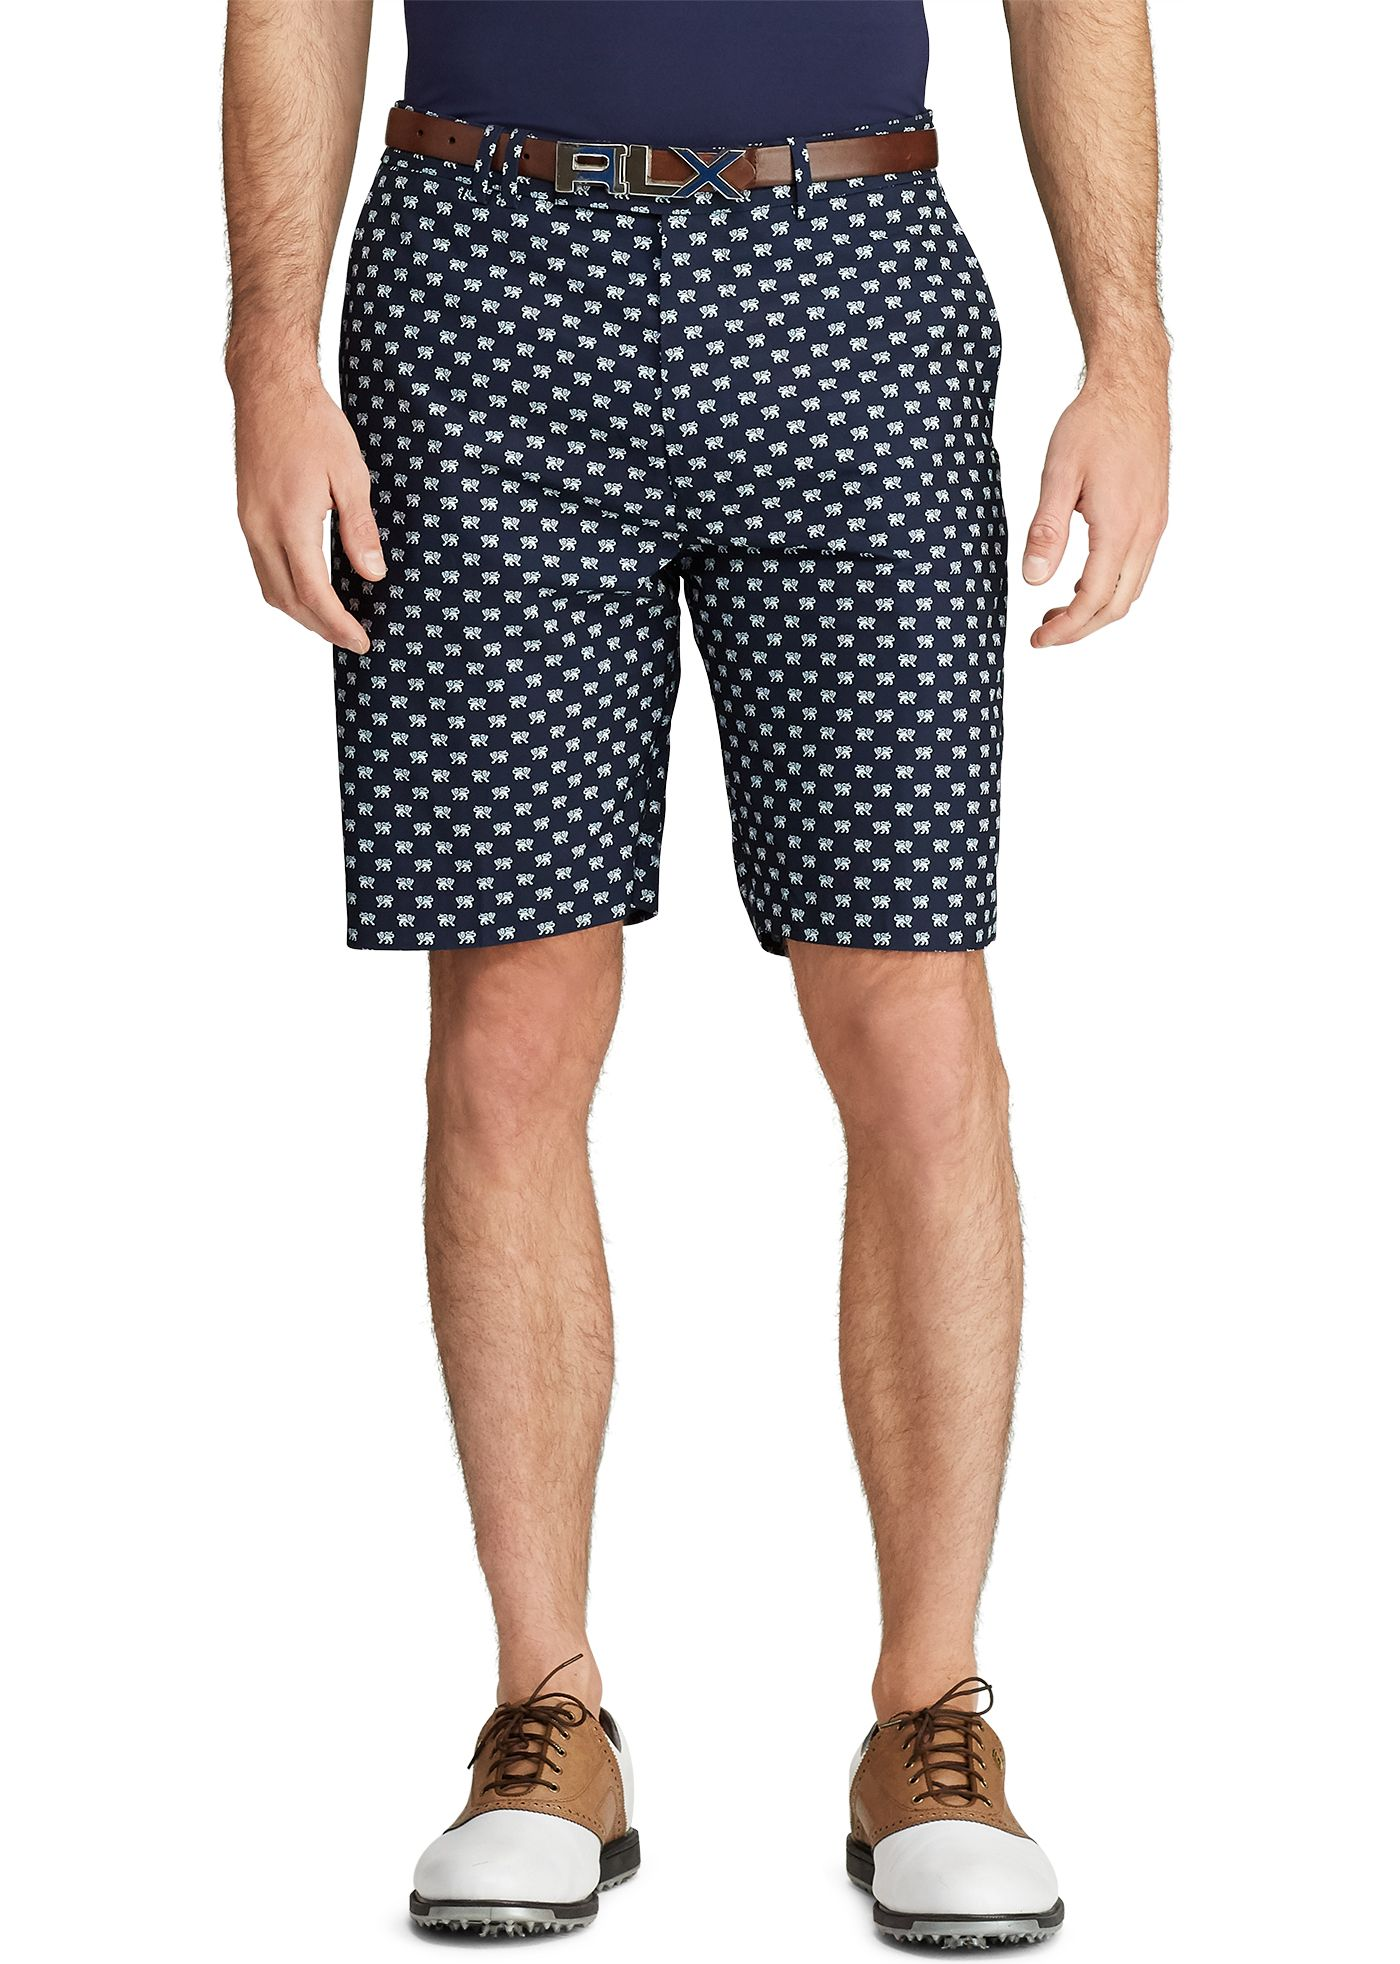 RLX Golf Men's Stretch Golf Shorts